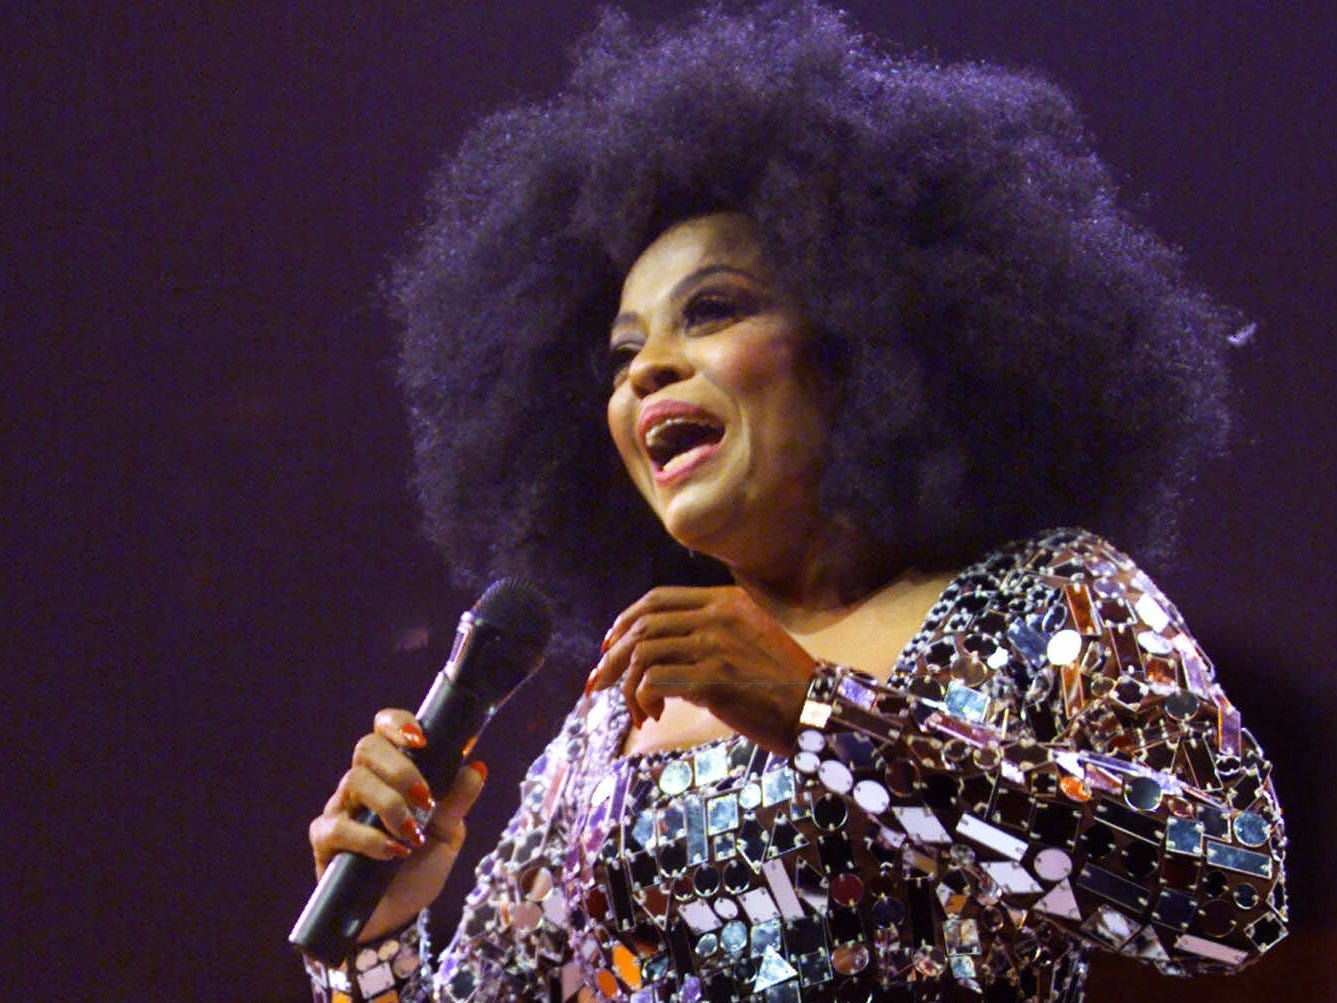 "In 1999, Diana Ross planned a new show of Supremes songs which would reunite her with Mary Wilson, Cindy Birdsong and other former Supremes. Negotiations crumbled, but ""The Return to Love"" tour ultimately kicked off with Ross singing with Lynda Laurence and Scherrie Payne on June 14, 2000 in Philadelphia.  Reviews were glowing but ticket sales were slow, and the tour was canceled after 13 stops."